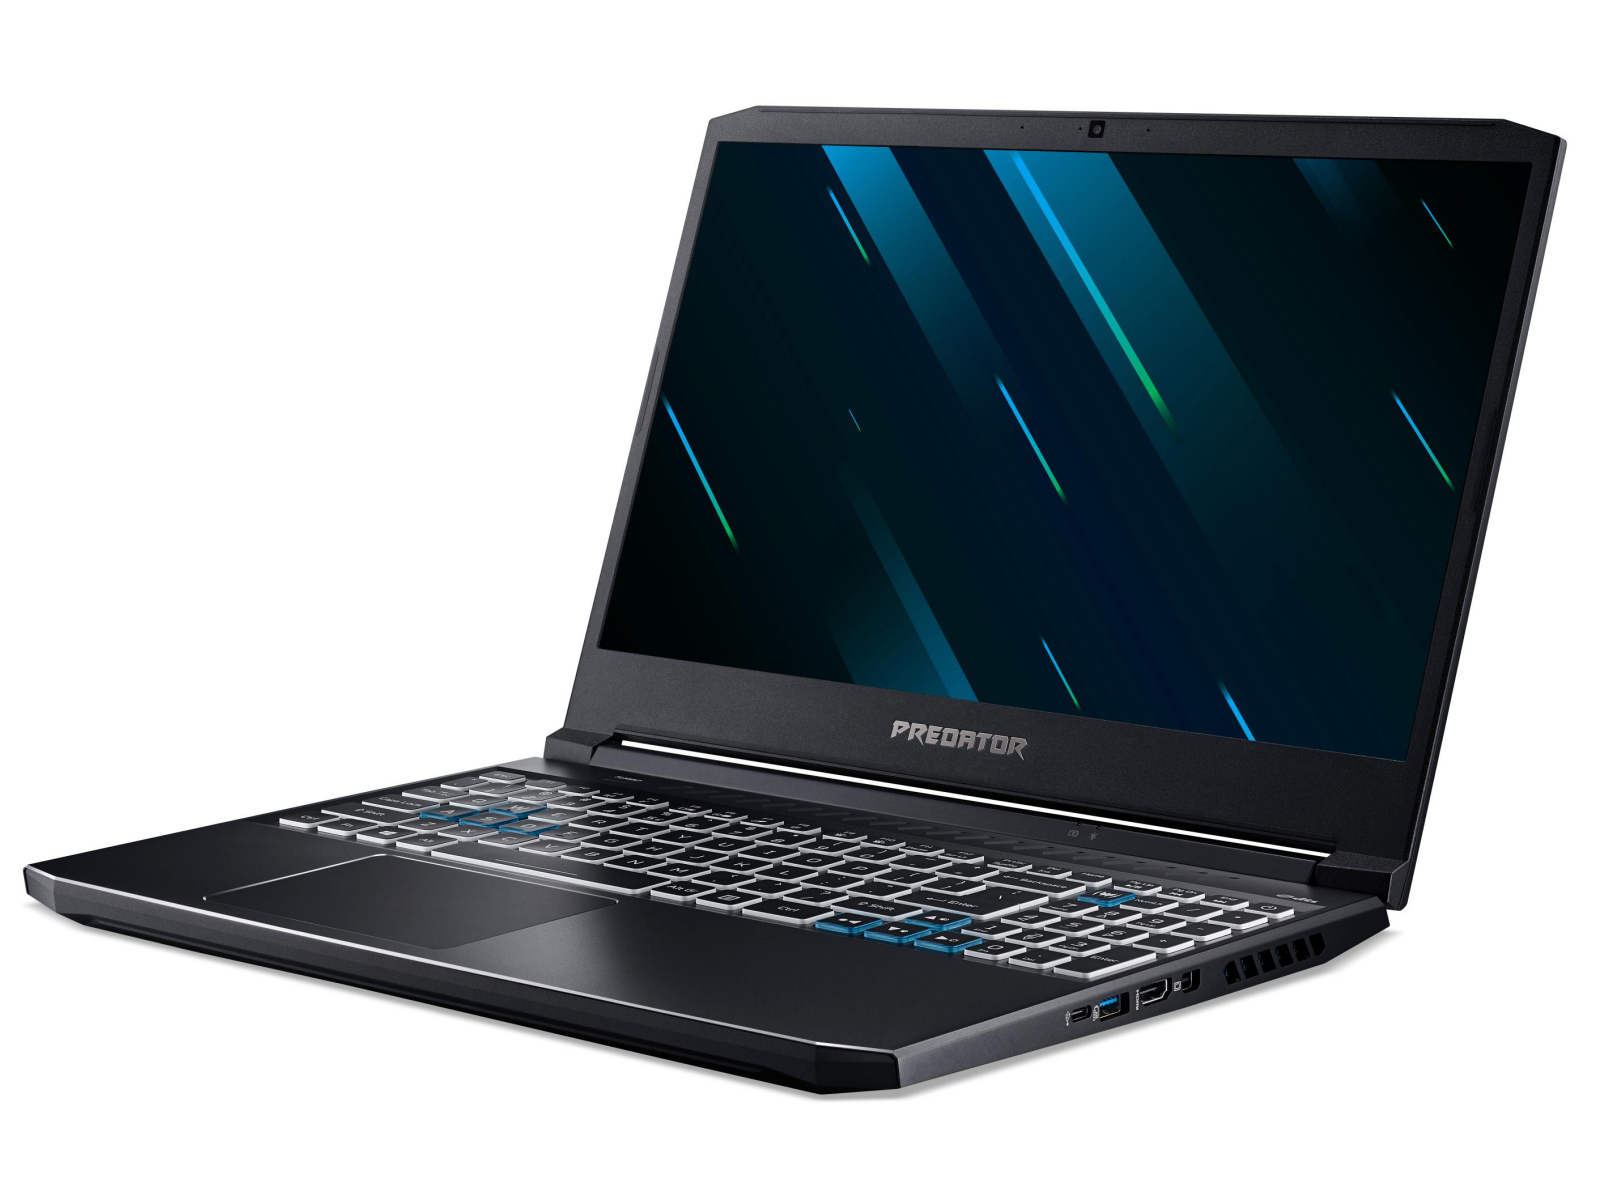 Memory in the Acer Predator Helios 300 PH315-53 runs in single-channel mode